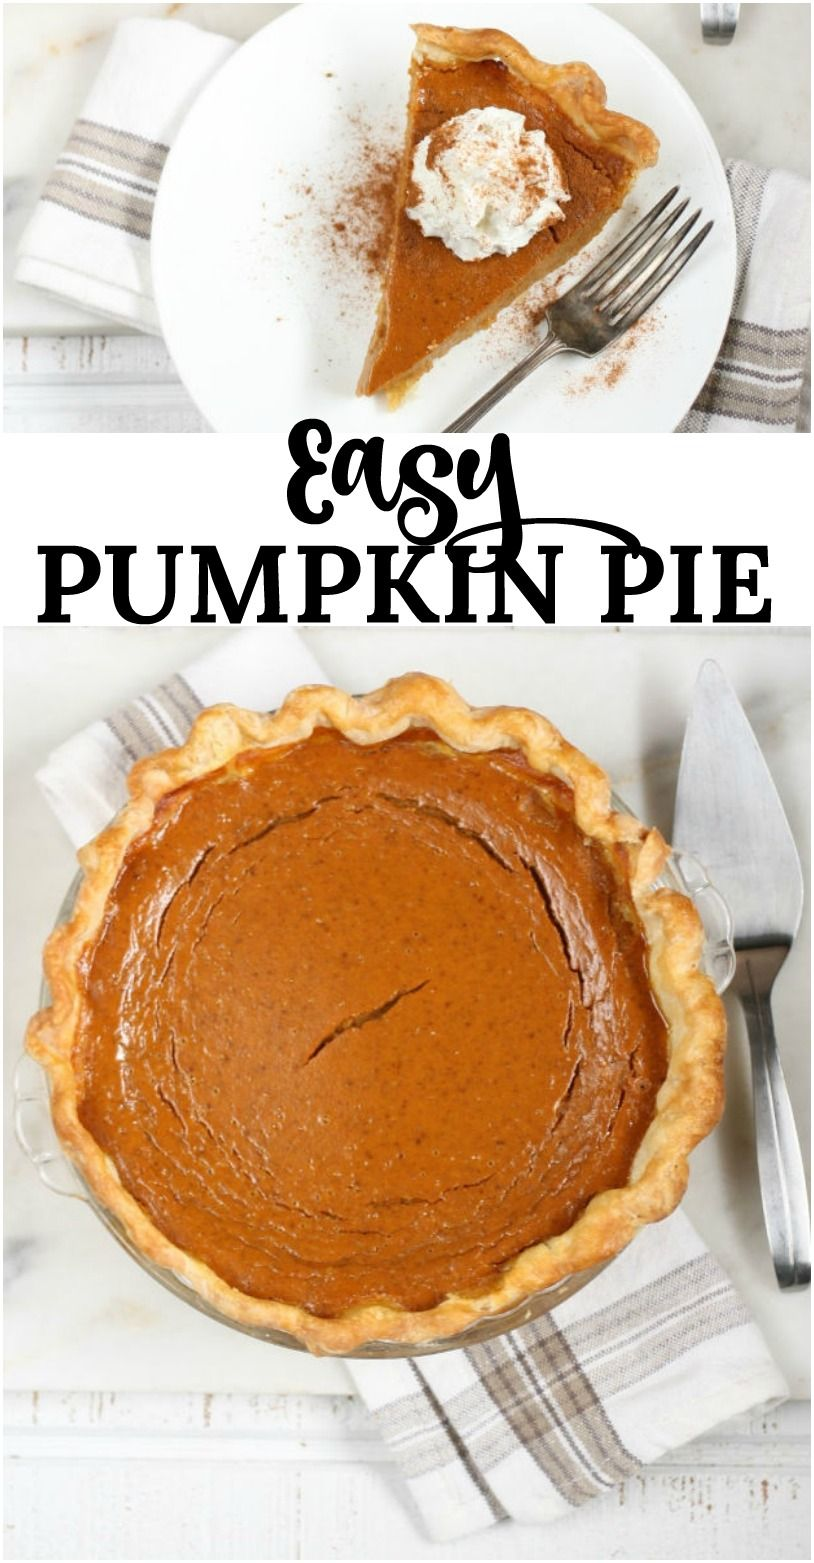 Classic Pumpkin Pie In A Cast Iron Skillet And Pie Leaves Is Easy To Make And T In 2020 Pumpkin Pie Recipe Easy Easy Pumpkin Pie Pumpkin Pie Recipe With Condensed Milk